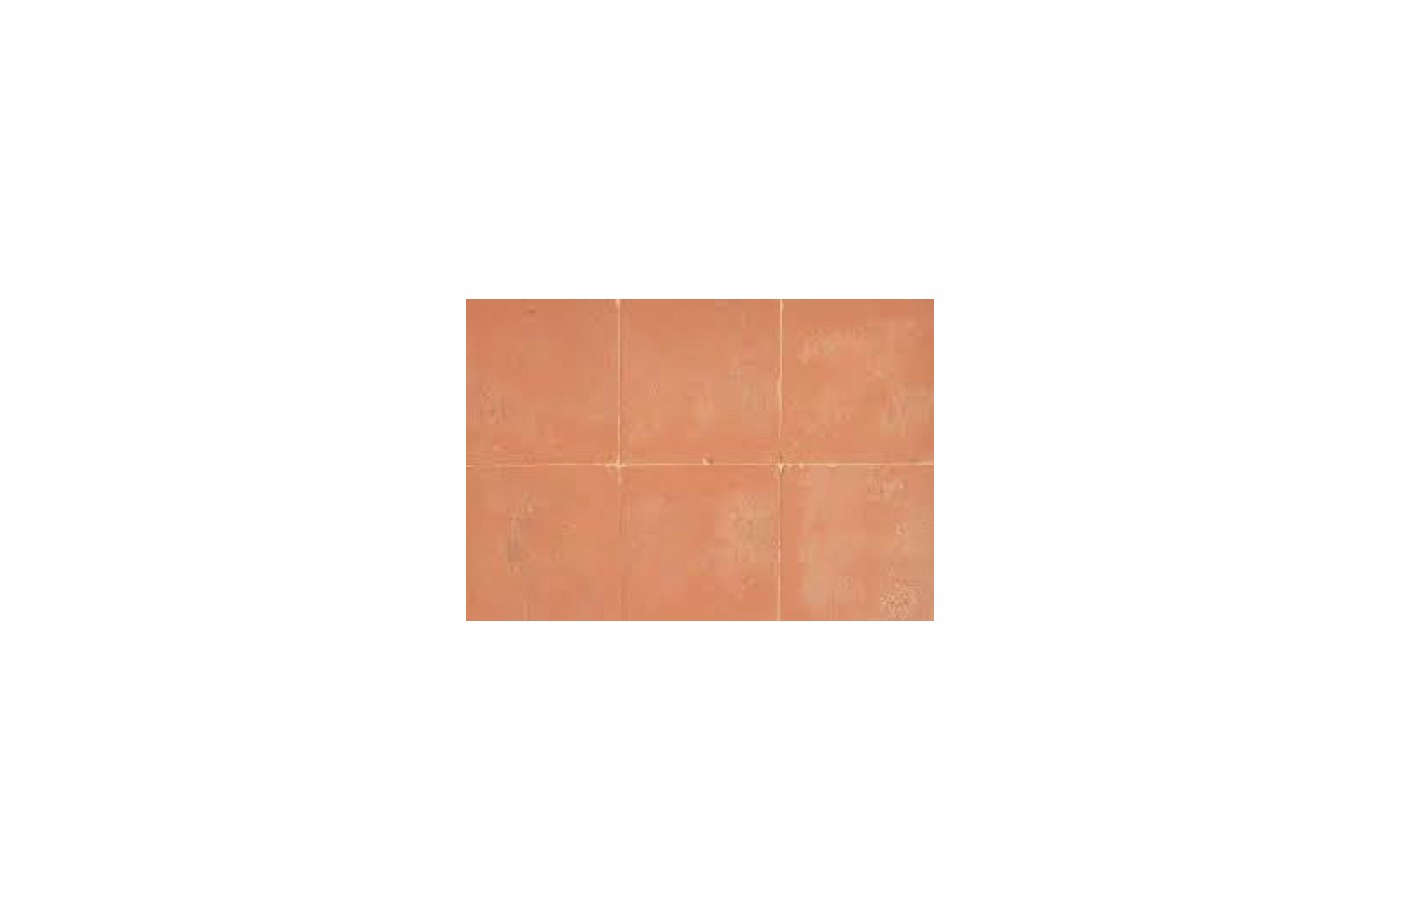 The tiles throughout the room are Italian terracotta tiles from Fornace Brioni.